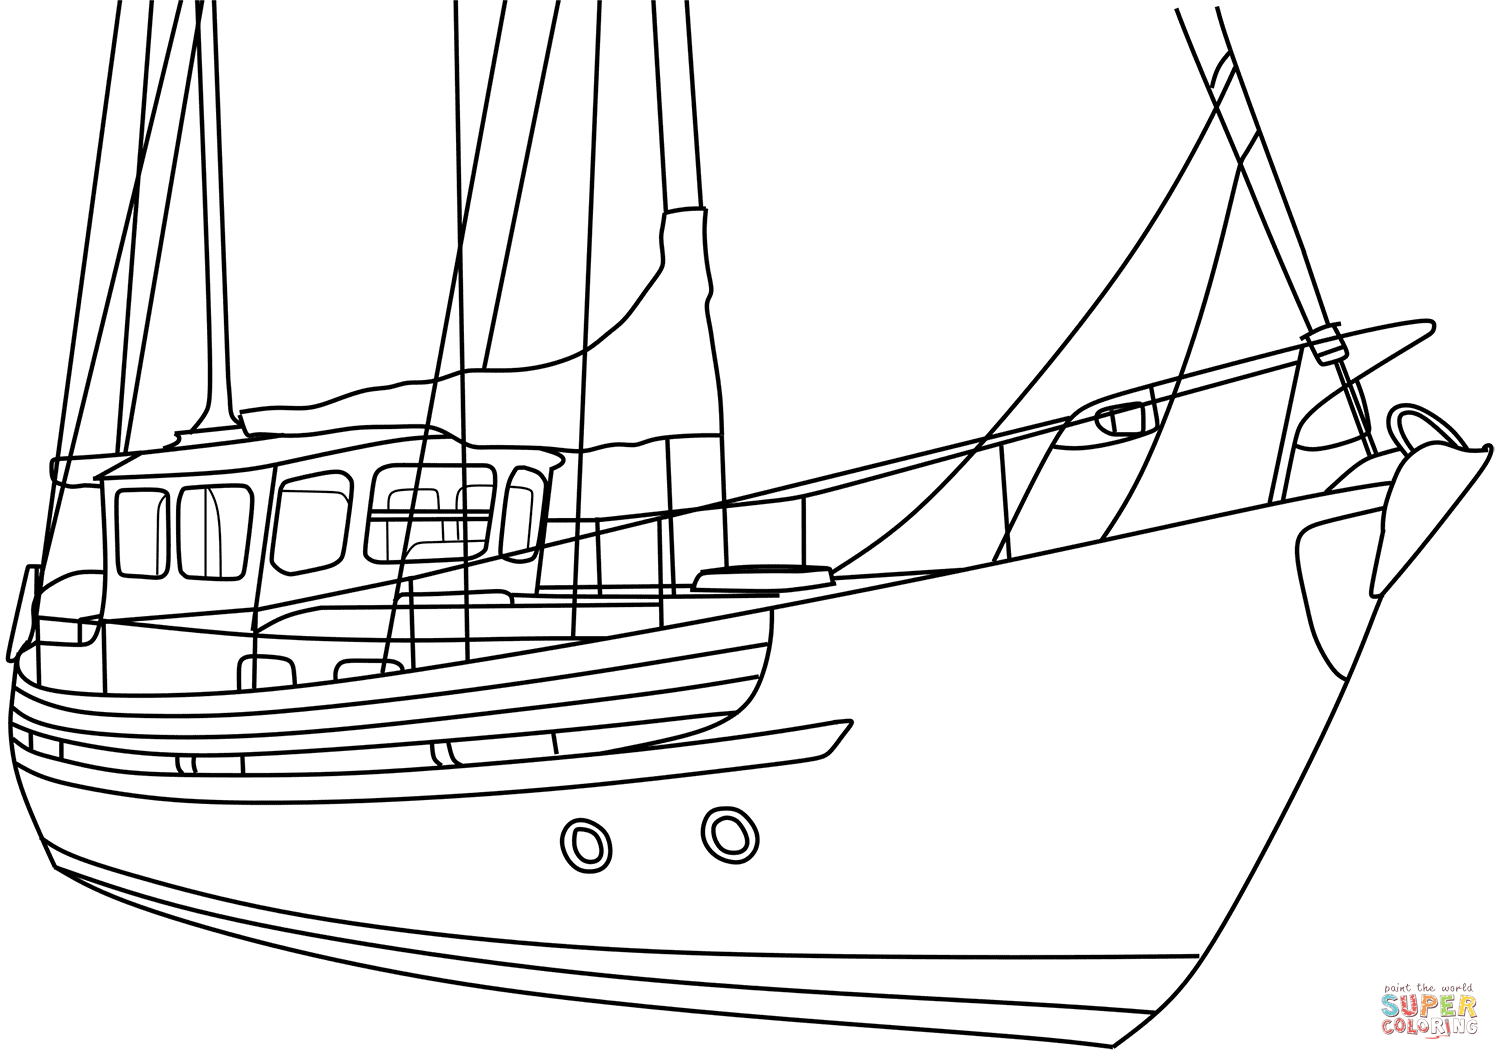 how to draw a fishing boat step by step motorsailer boat ぬりえ free printable coloring pages step draw to by step fishing how boat a